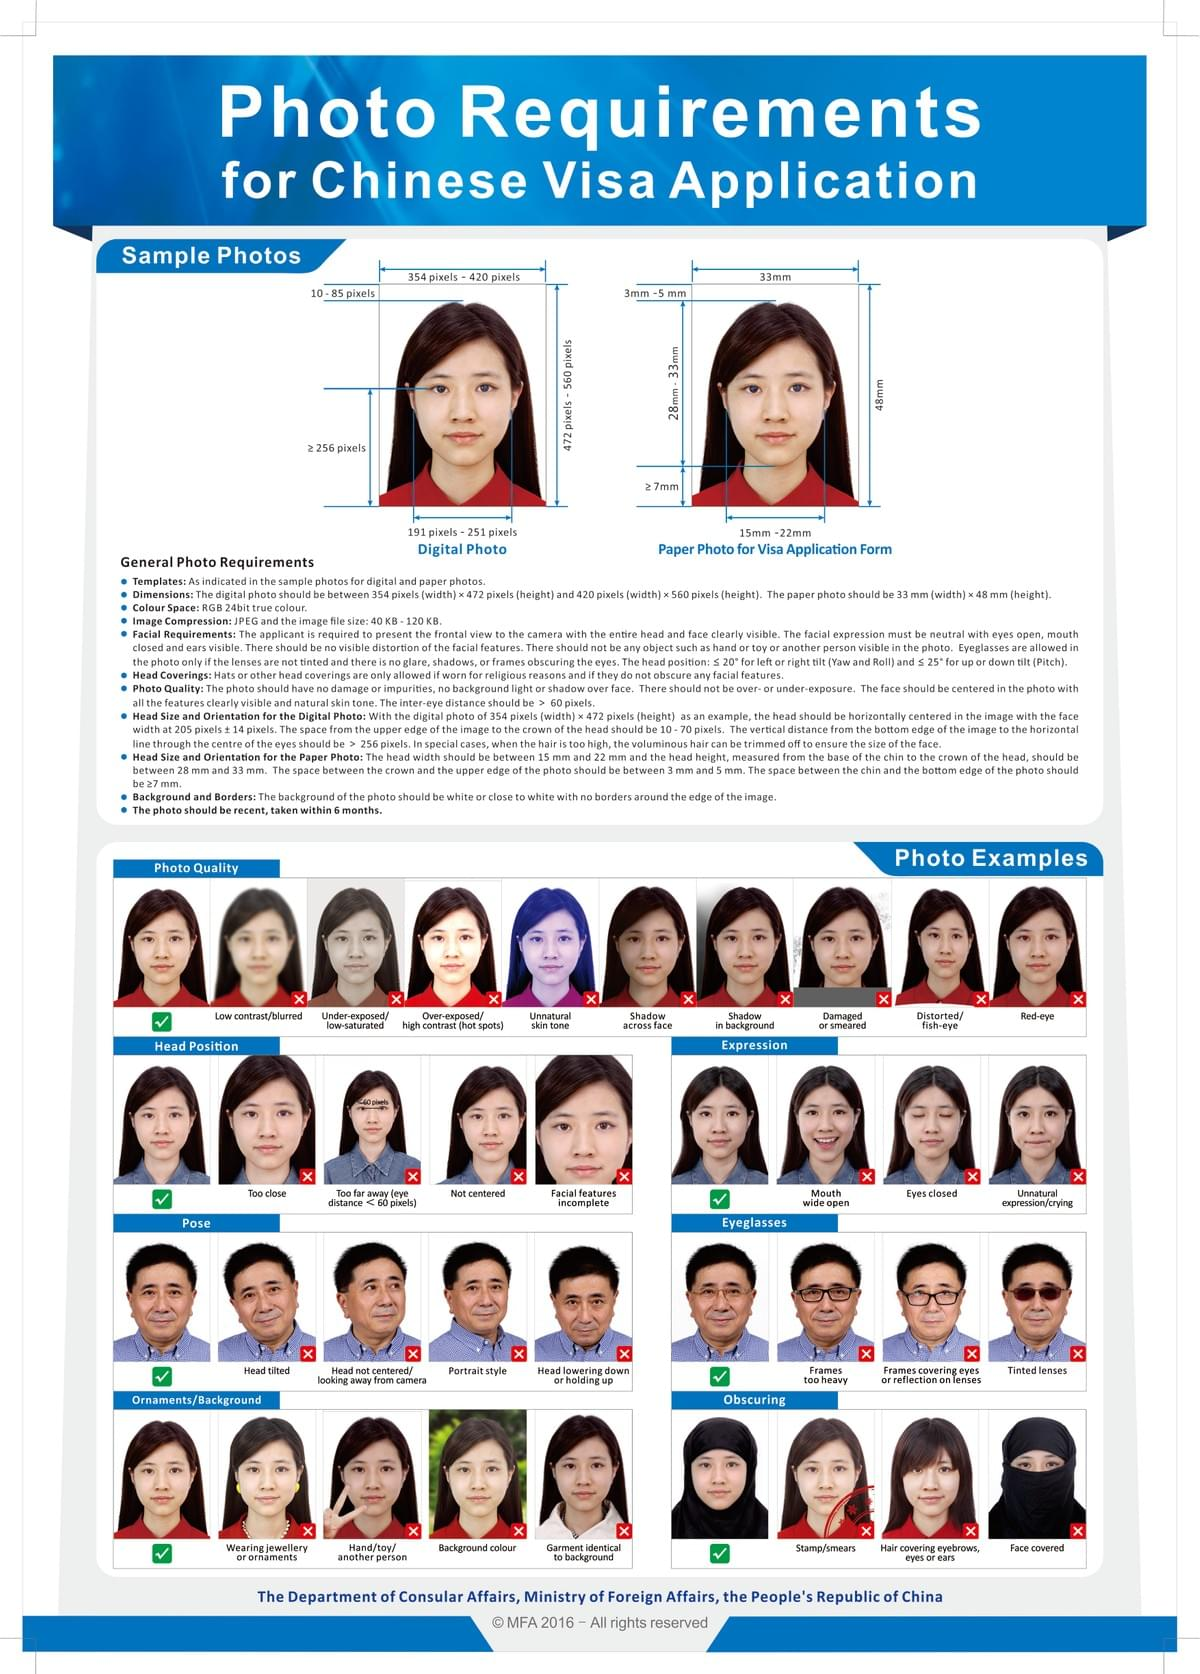 Phot Requirements for China Visa Application Form